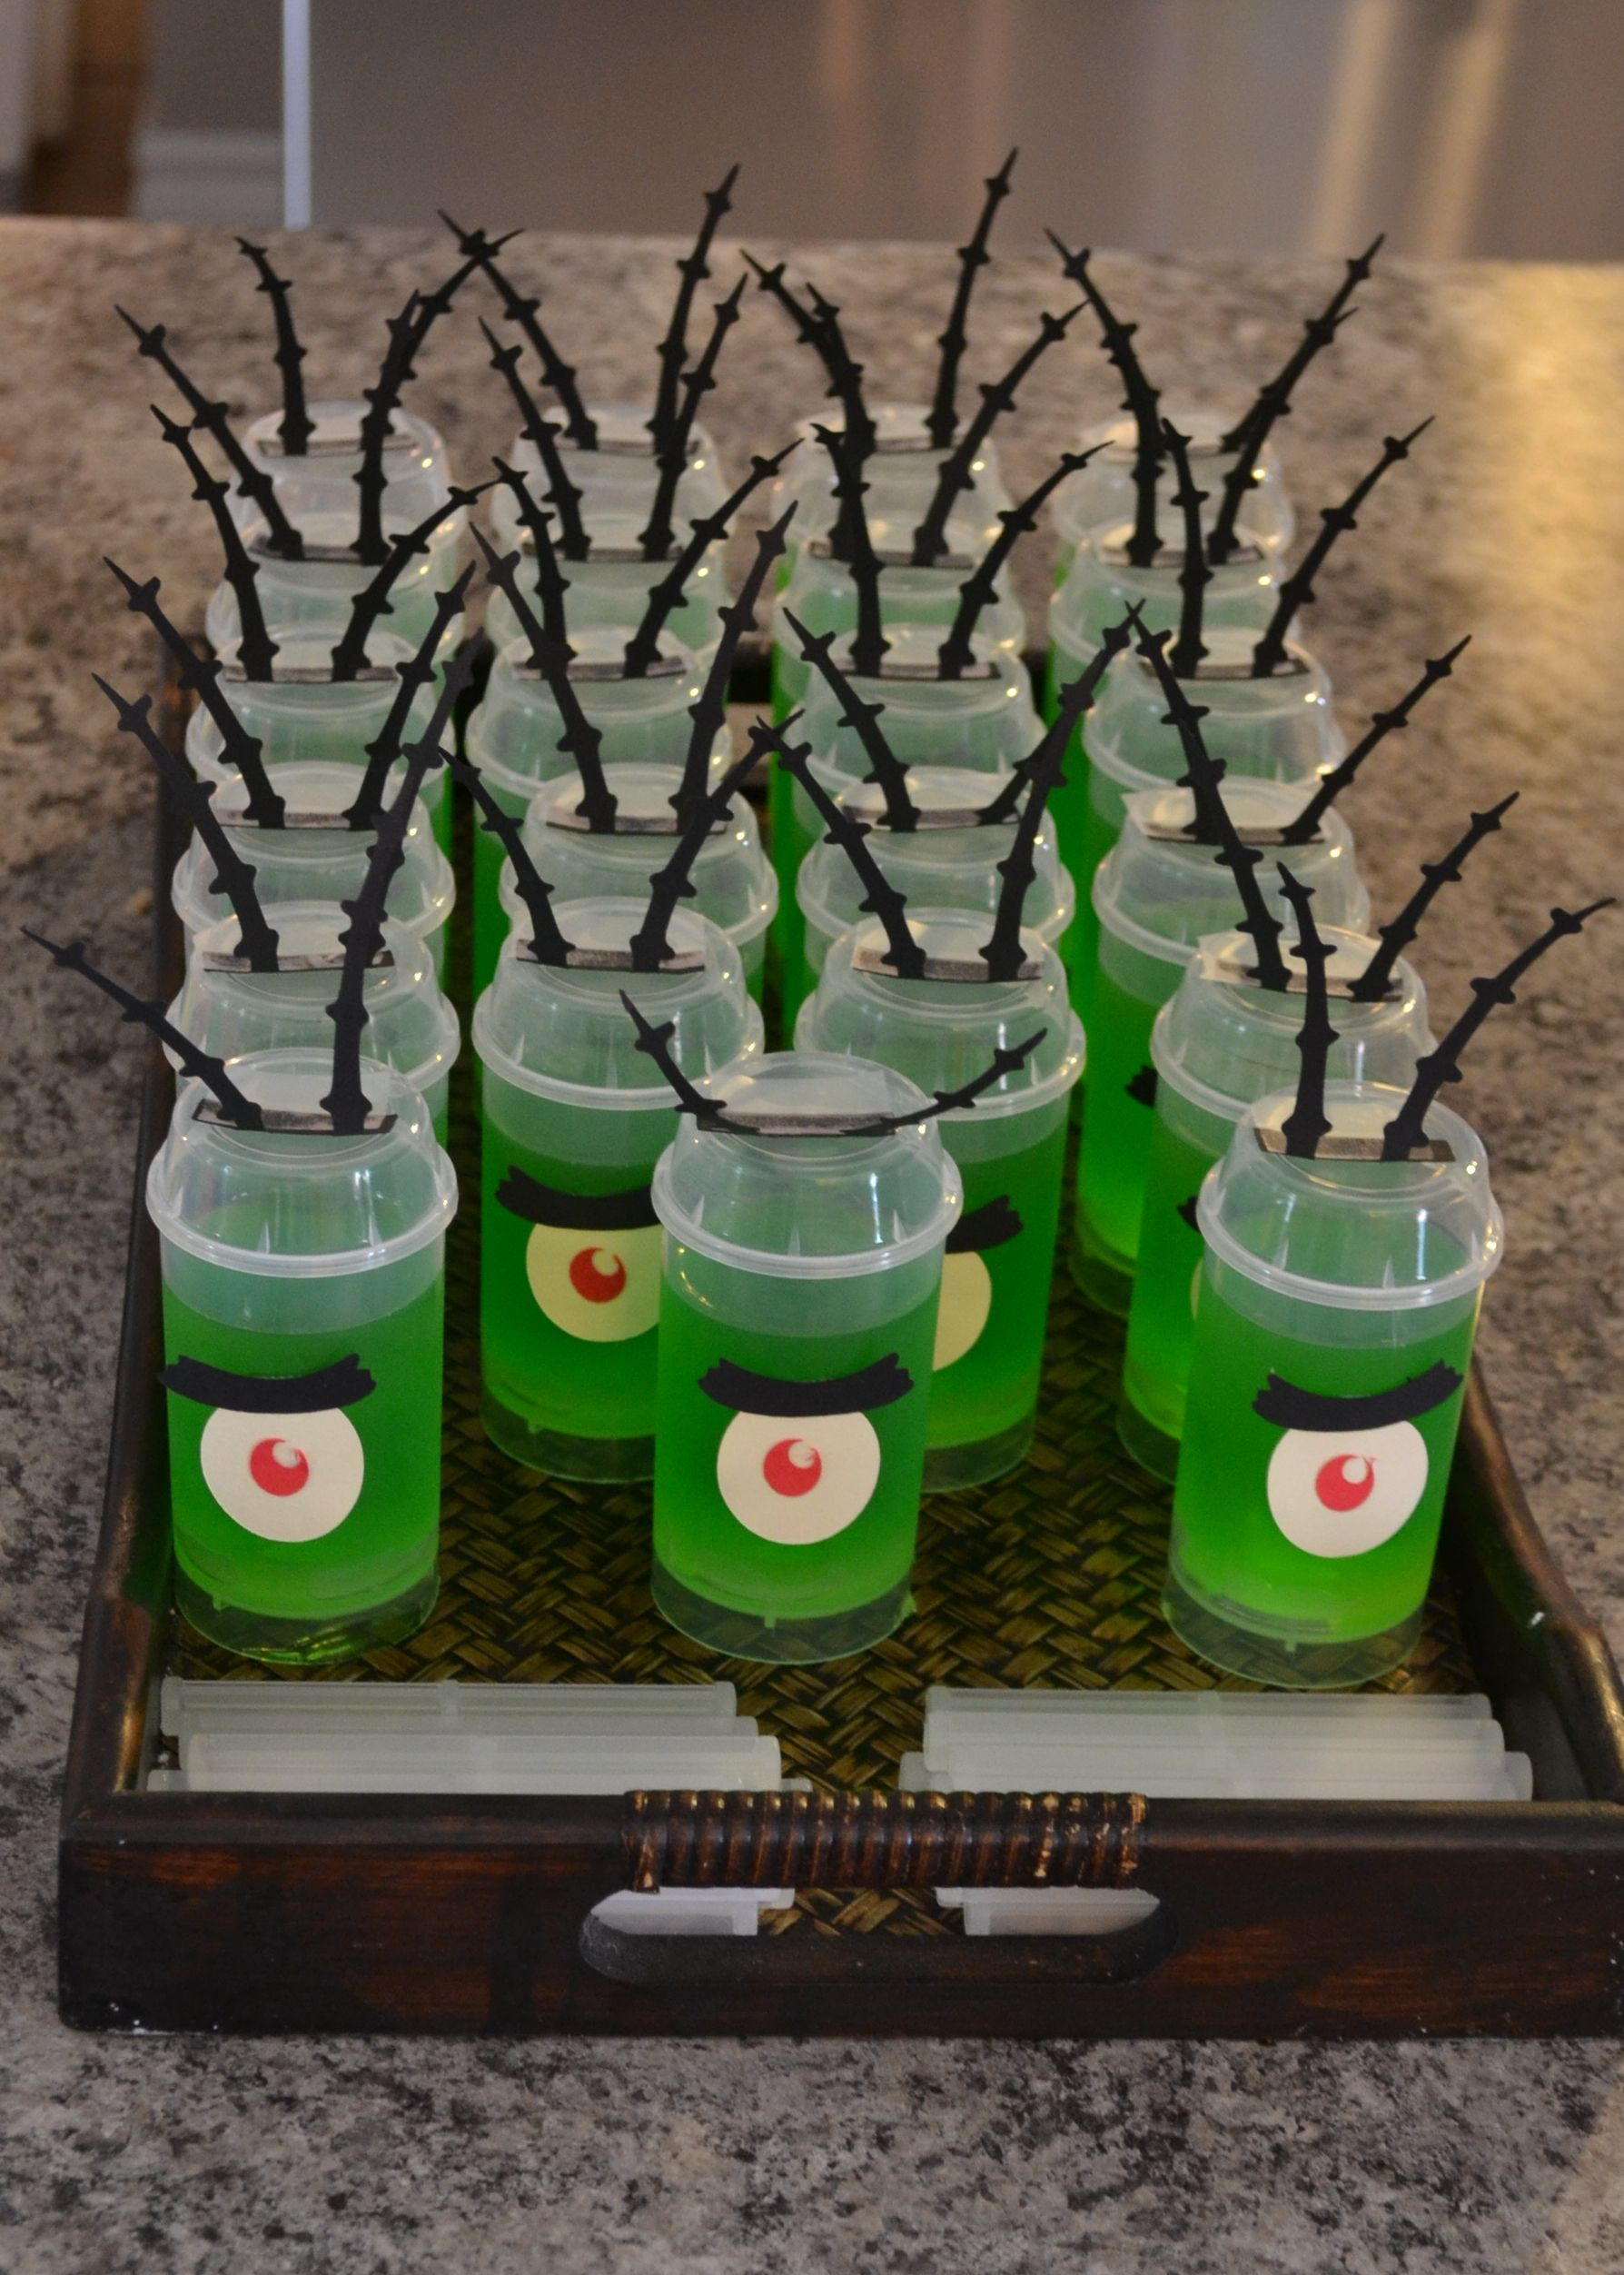 Plankton Jello I Know They Sell Straight Wall Shooters And Tasting Spoons So They D Fit The F Spongebob Party Spongebob Birthday Spongebob Squarepants Party